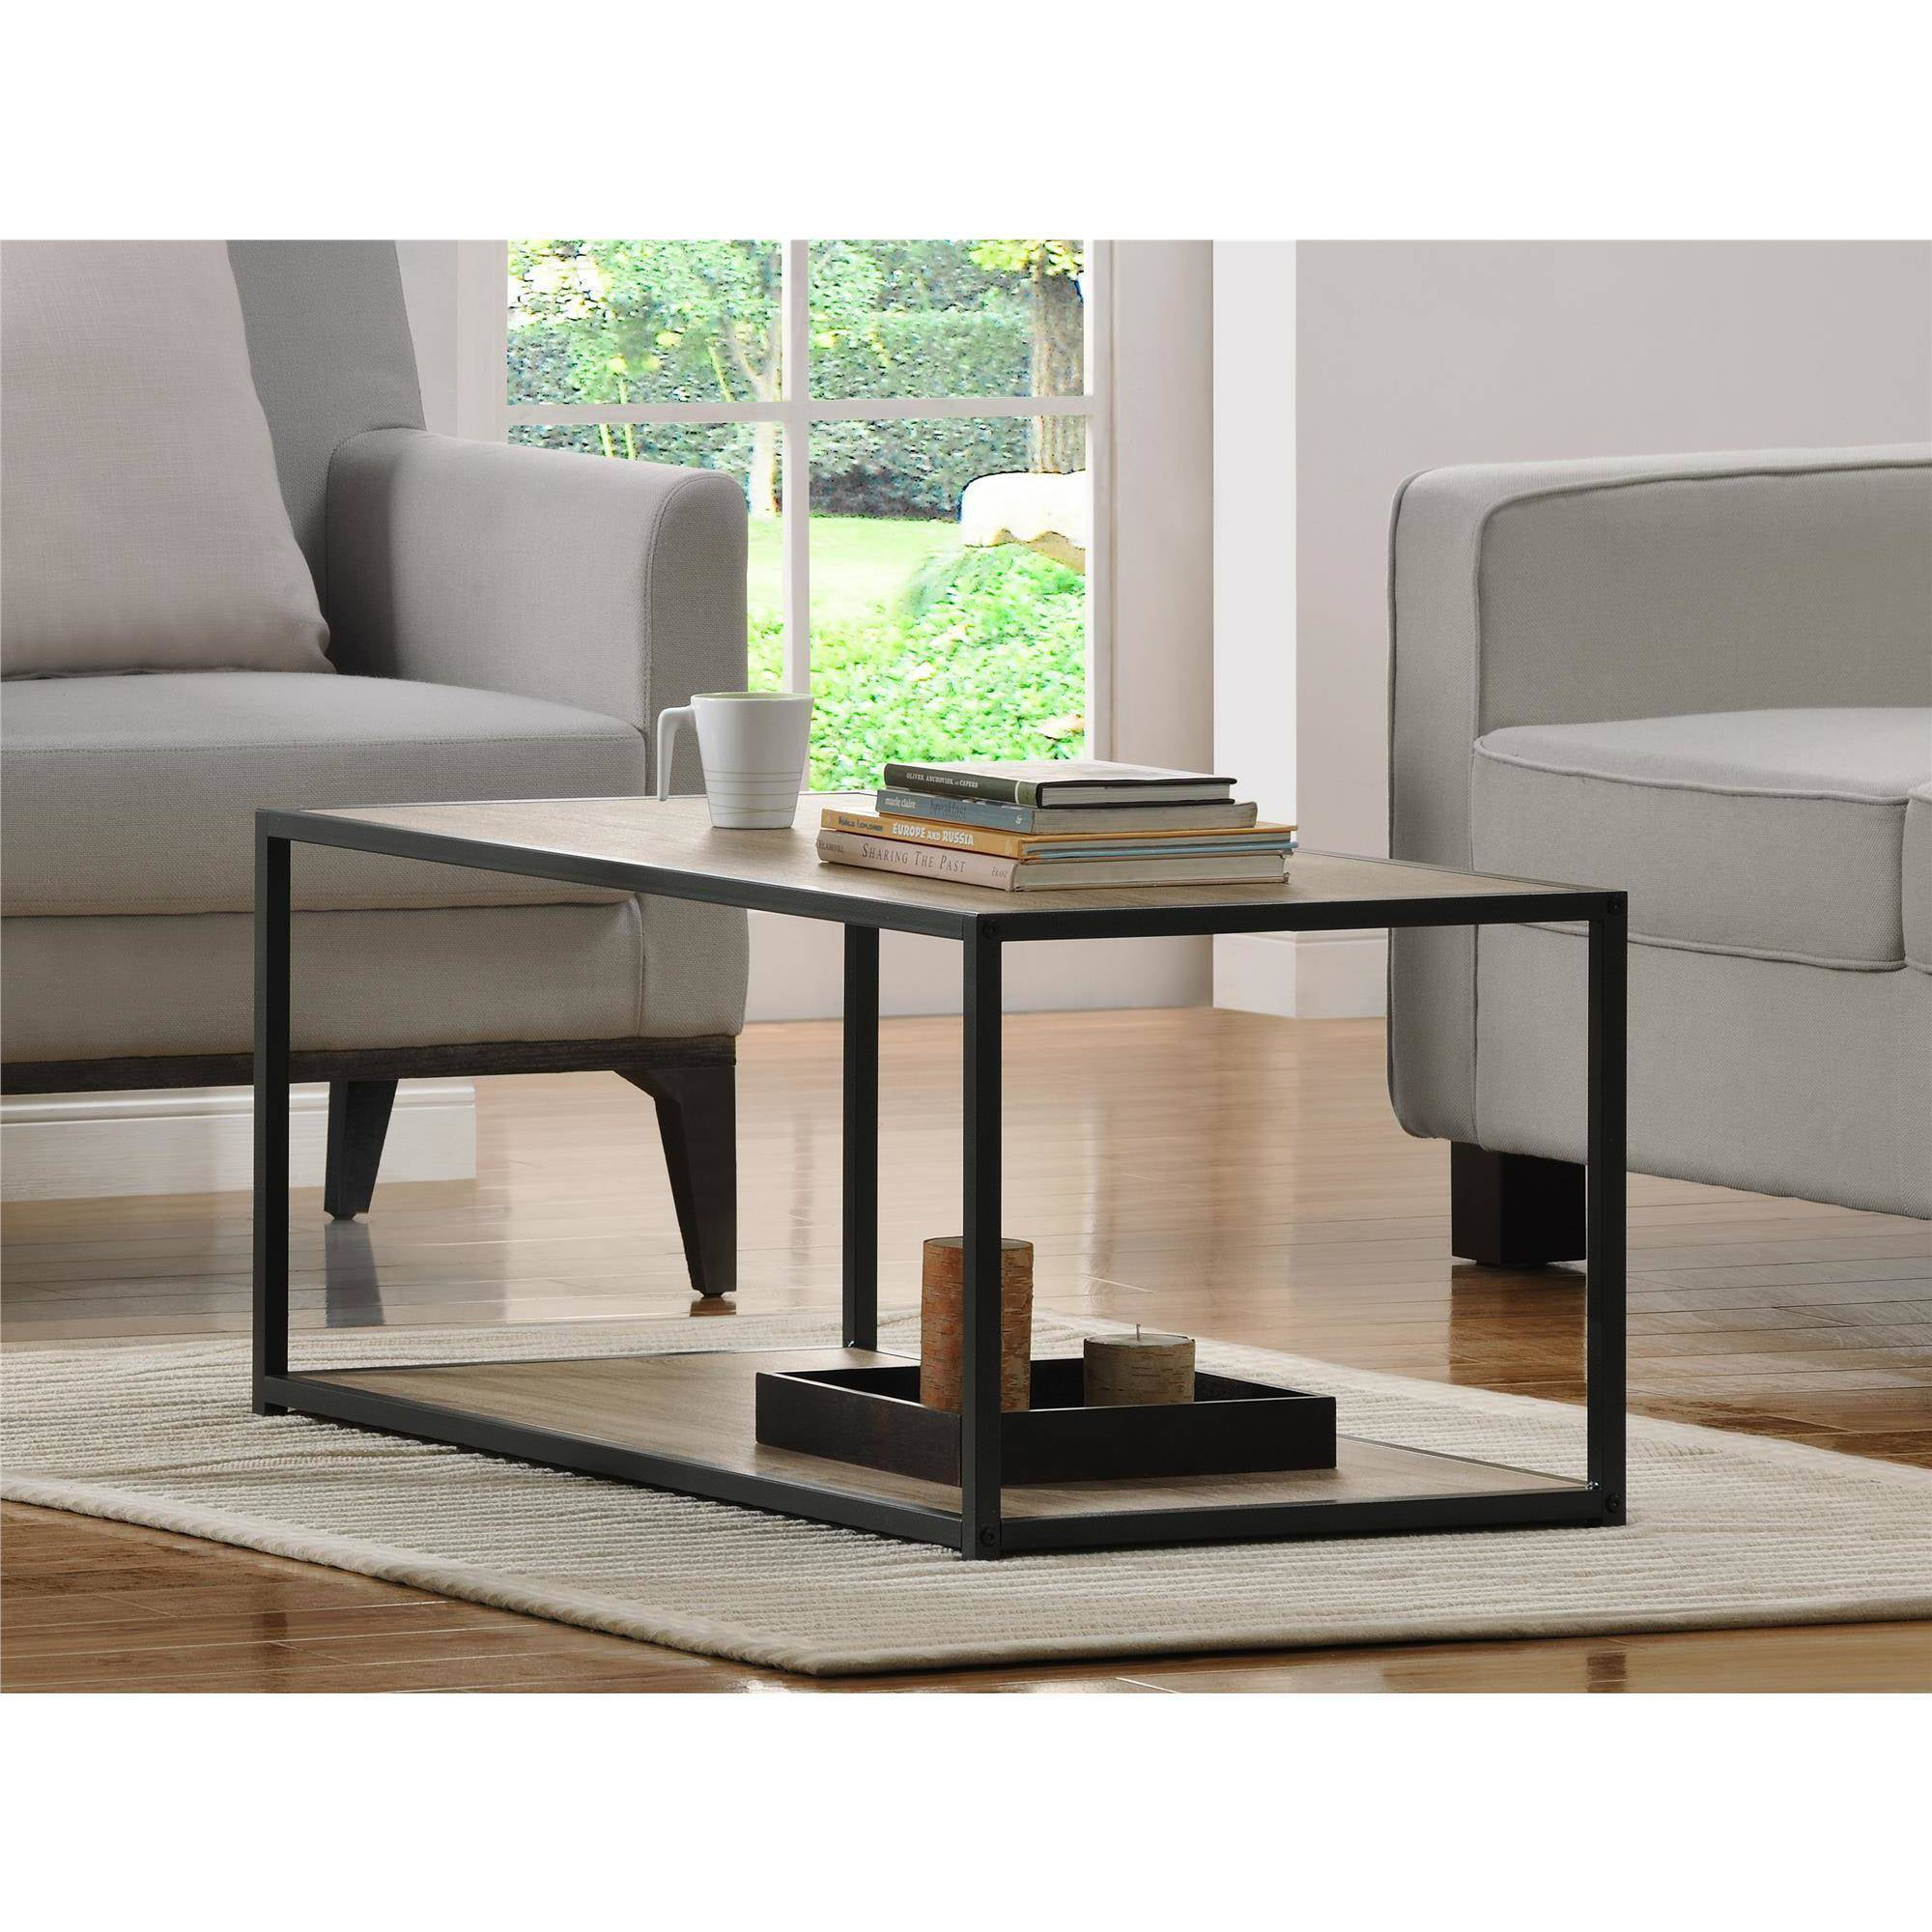 ameriwood home canton coffee table with metal frame distressed gray oak walmartcom - Metal Frame Coffee Table